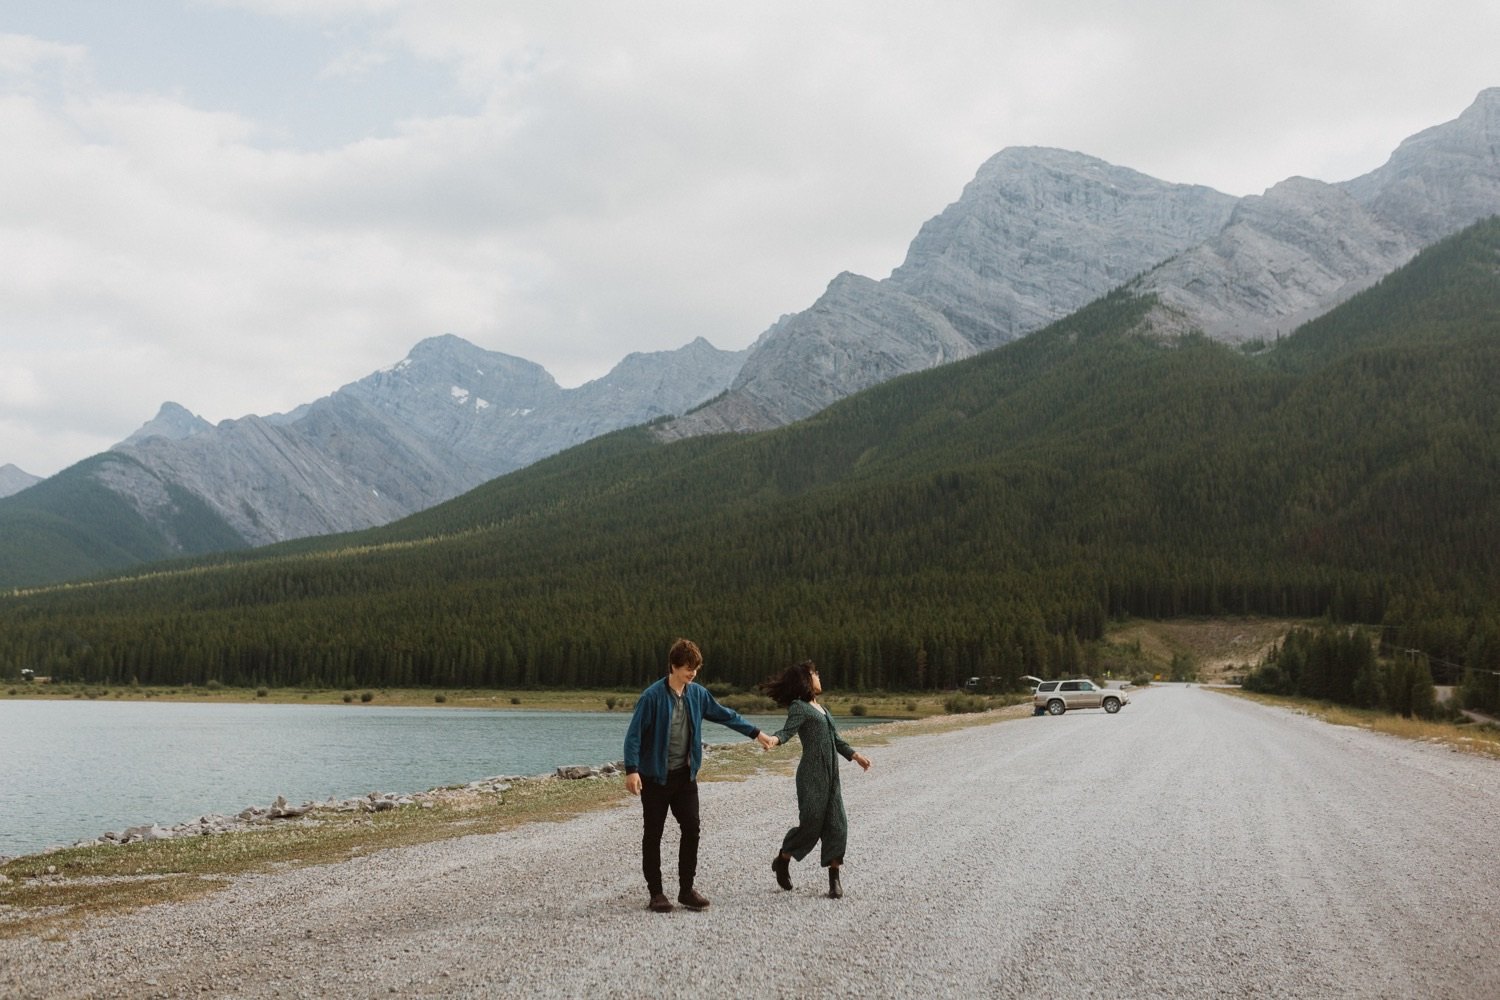 Couple Photos in Banff National Park, Banff National Park Couple Photos, Wedding photos in Banff National Park, Banff National Park Elopement, Where to get couple photos in Banff, Banff Wedding, Banff Wedding Photographer, Banff Engagement Photographer, Wedding in Banff National Park, Couple Photos Banff, Banff Engagement Photos, Couple photos at Spray Lakes Kananaskis, Spray Lakes Kananaskis